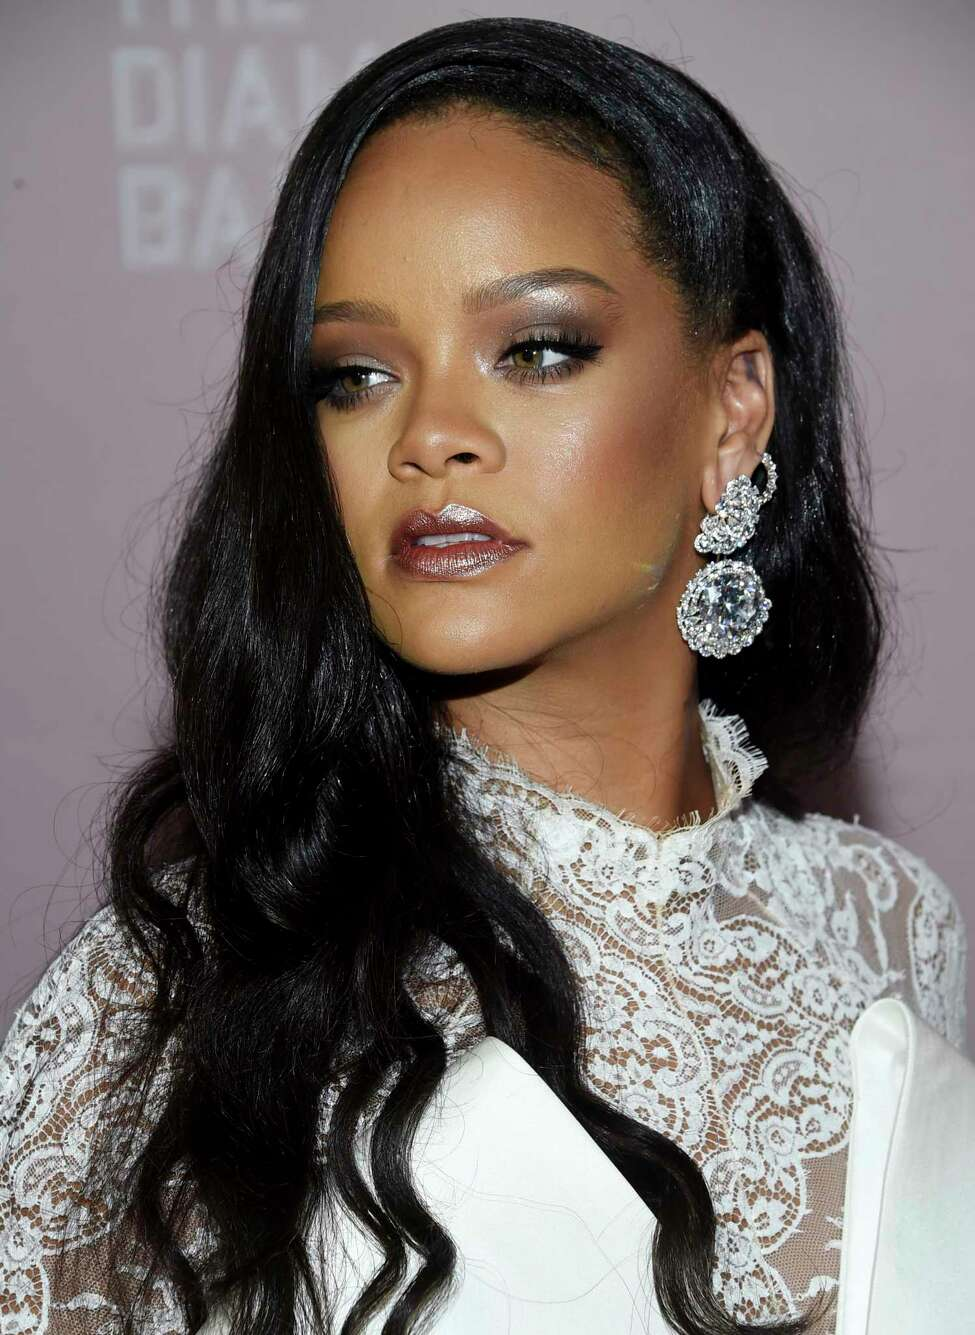 Singer Rihanna attends the 4th annual Diamond Ball at Cipriani Wall Street on Thursday, Sept. 13, 2018, in New York. (Photo by Evan Agostini/Invision/AP)